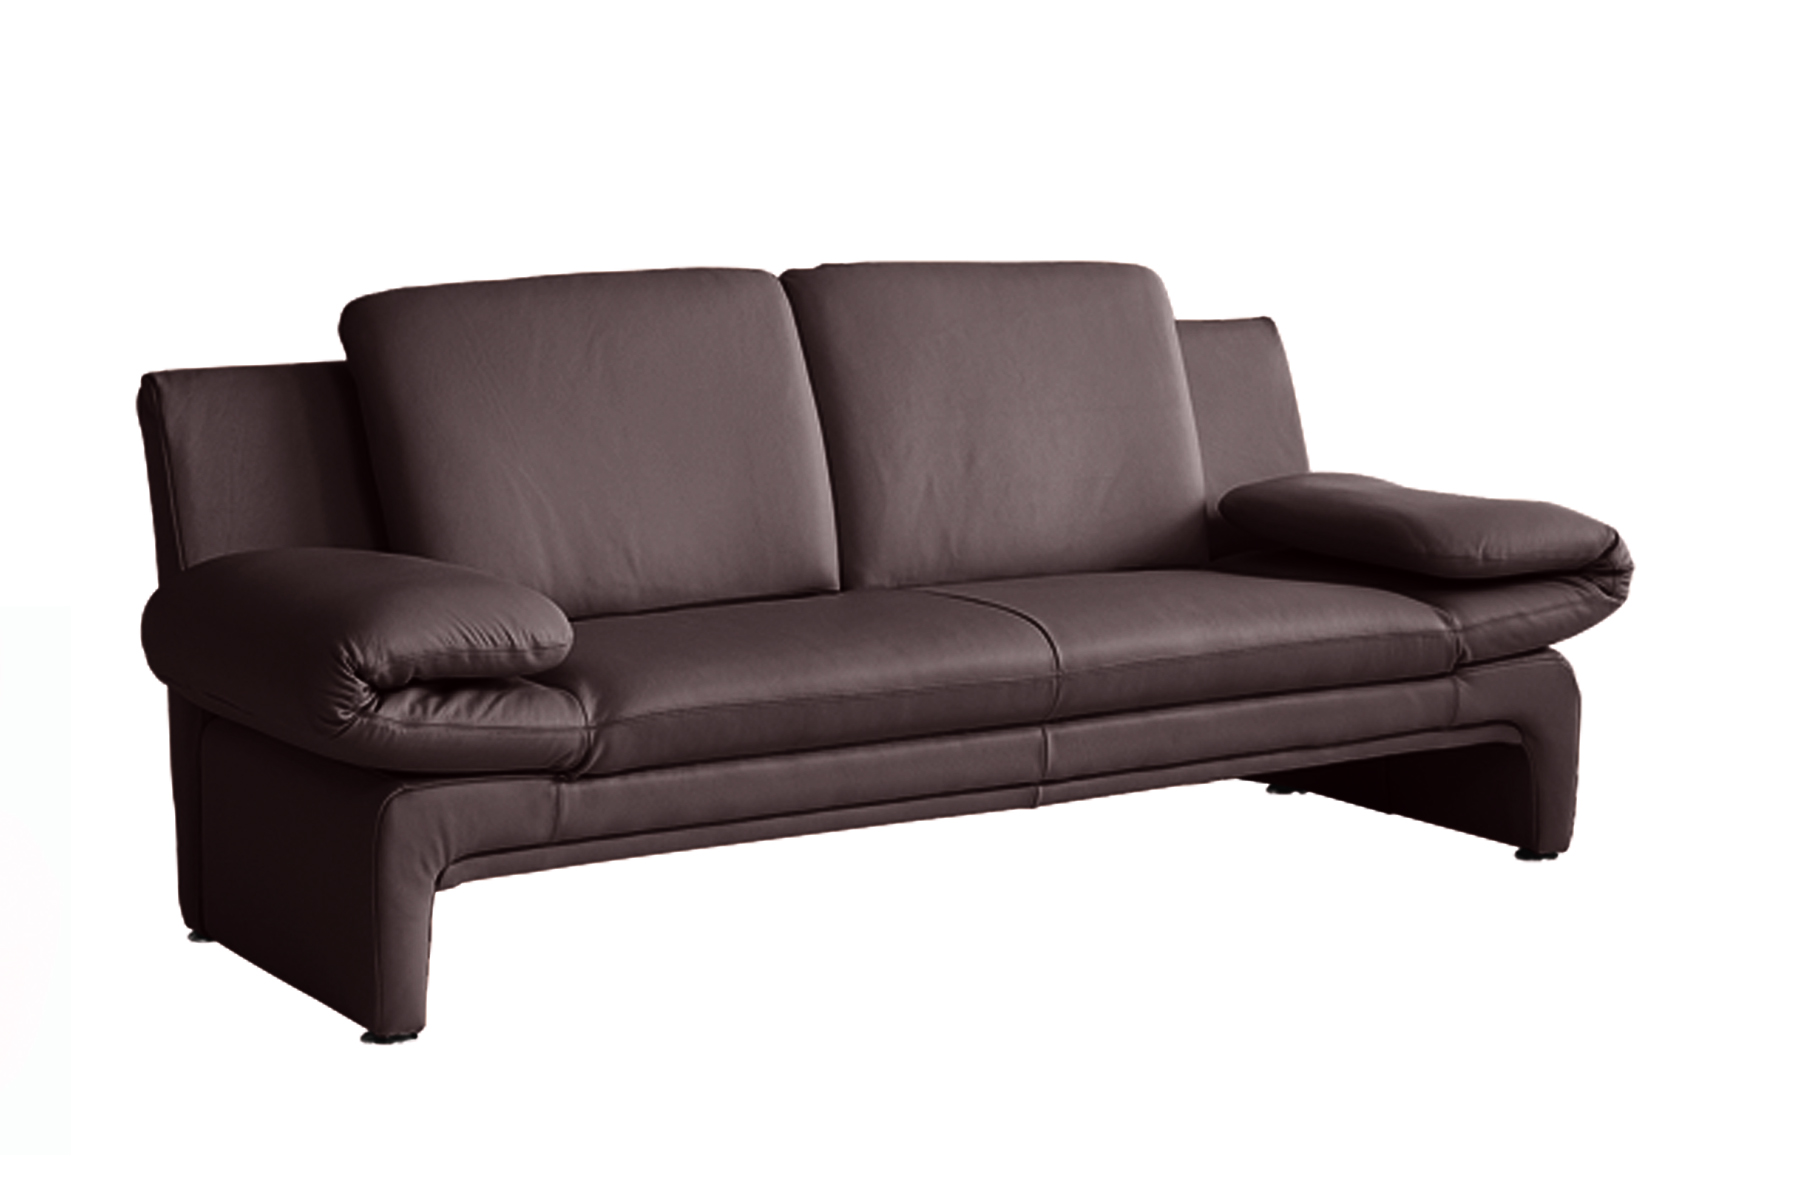 echt dick leder sofa couch garnitur funktionssofa capri 2 sitzer oder 3er neu ebay. Black Bedroom Furniture Sets. Home Design Ideas